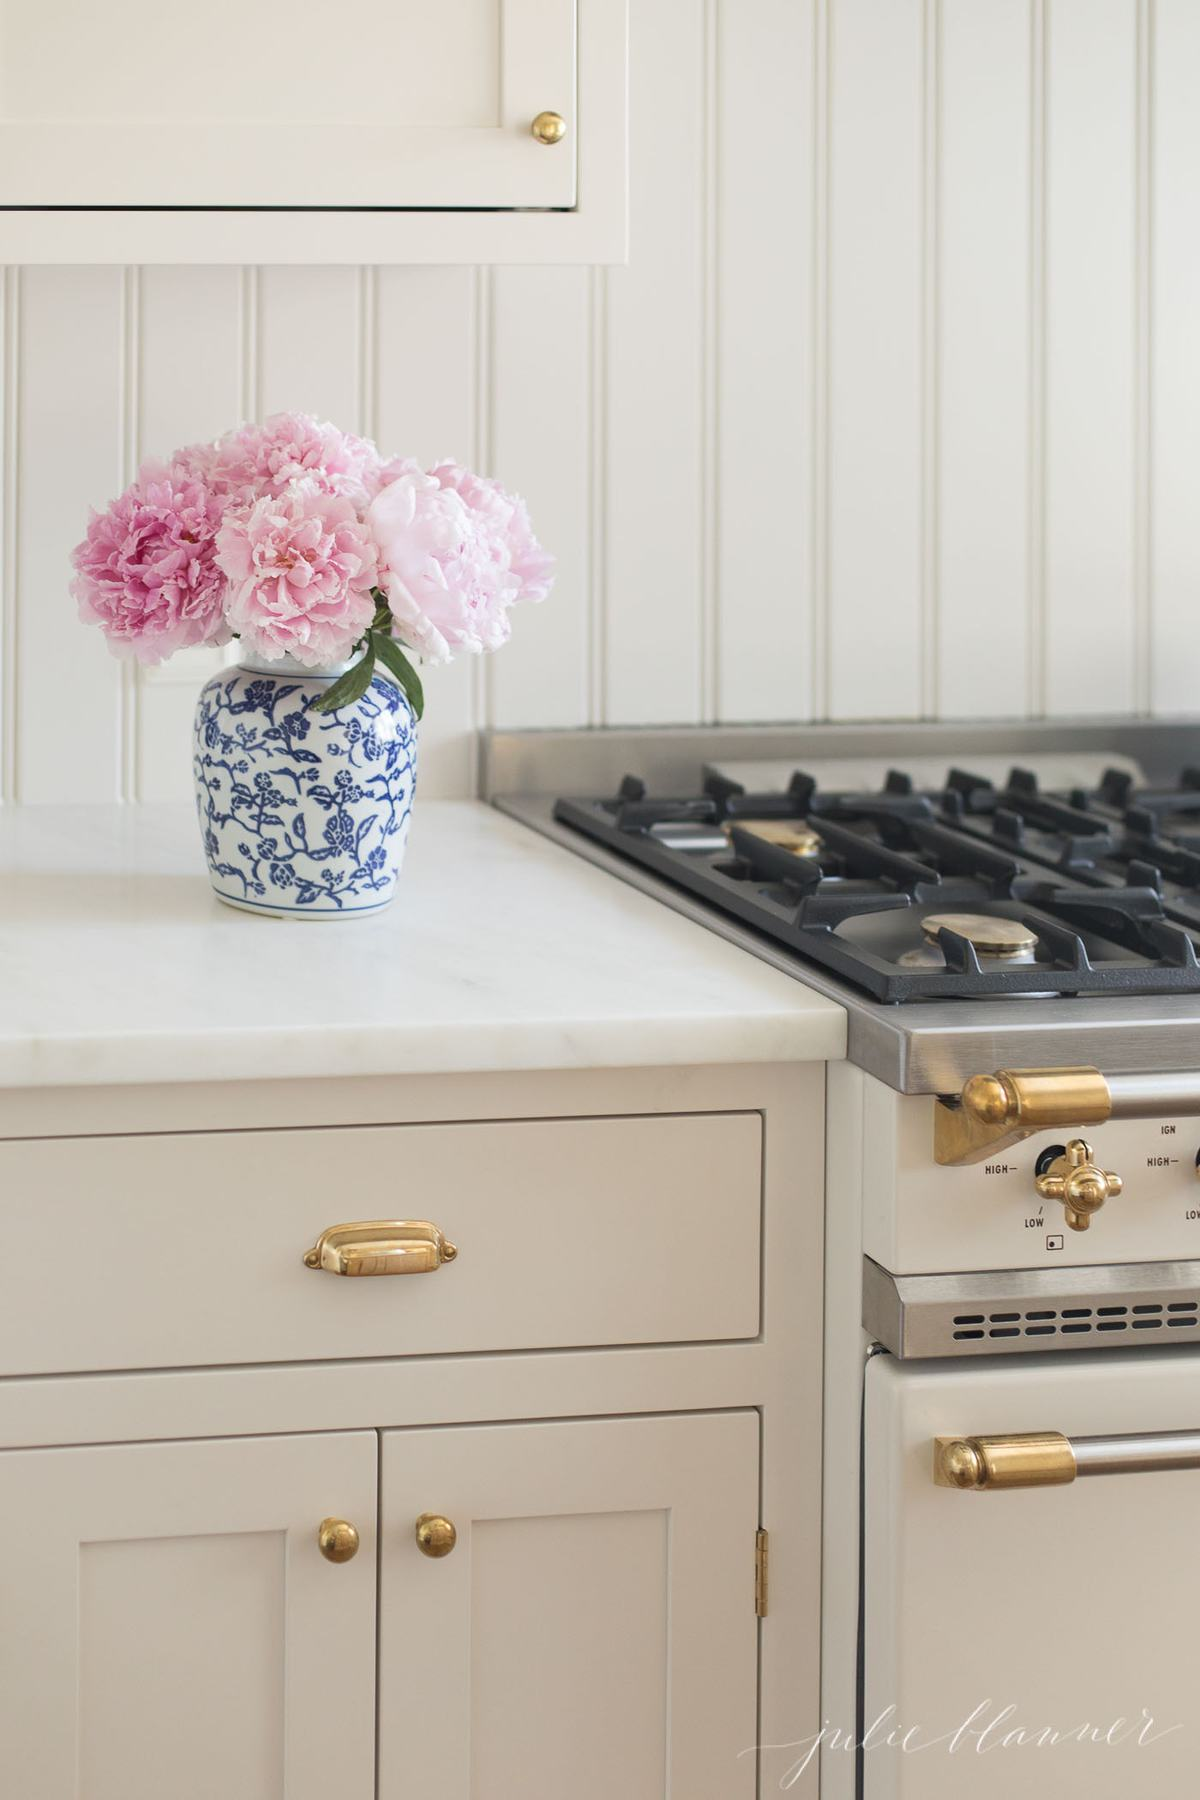 A white kitchen with a blue and white vase of peony flowers by the range.